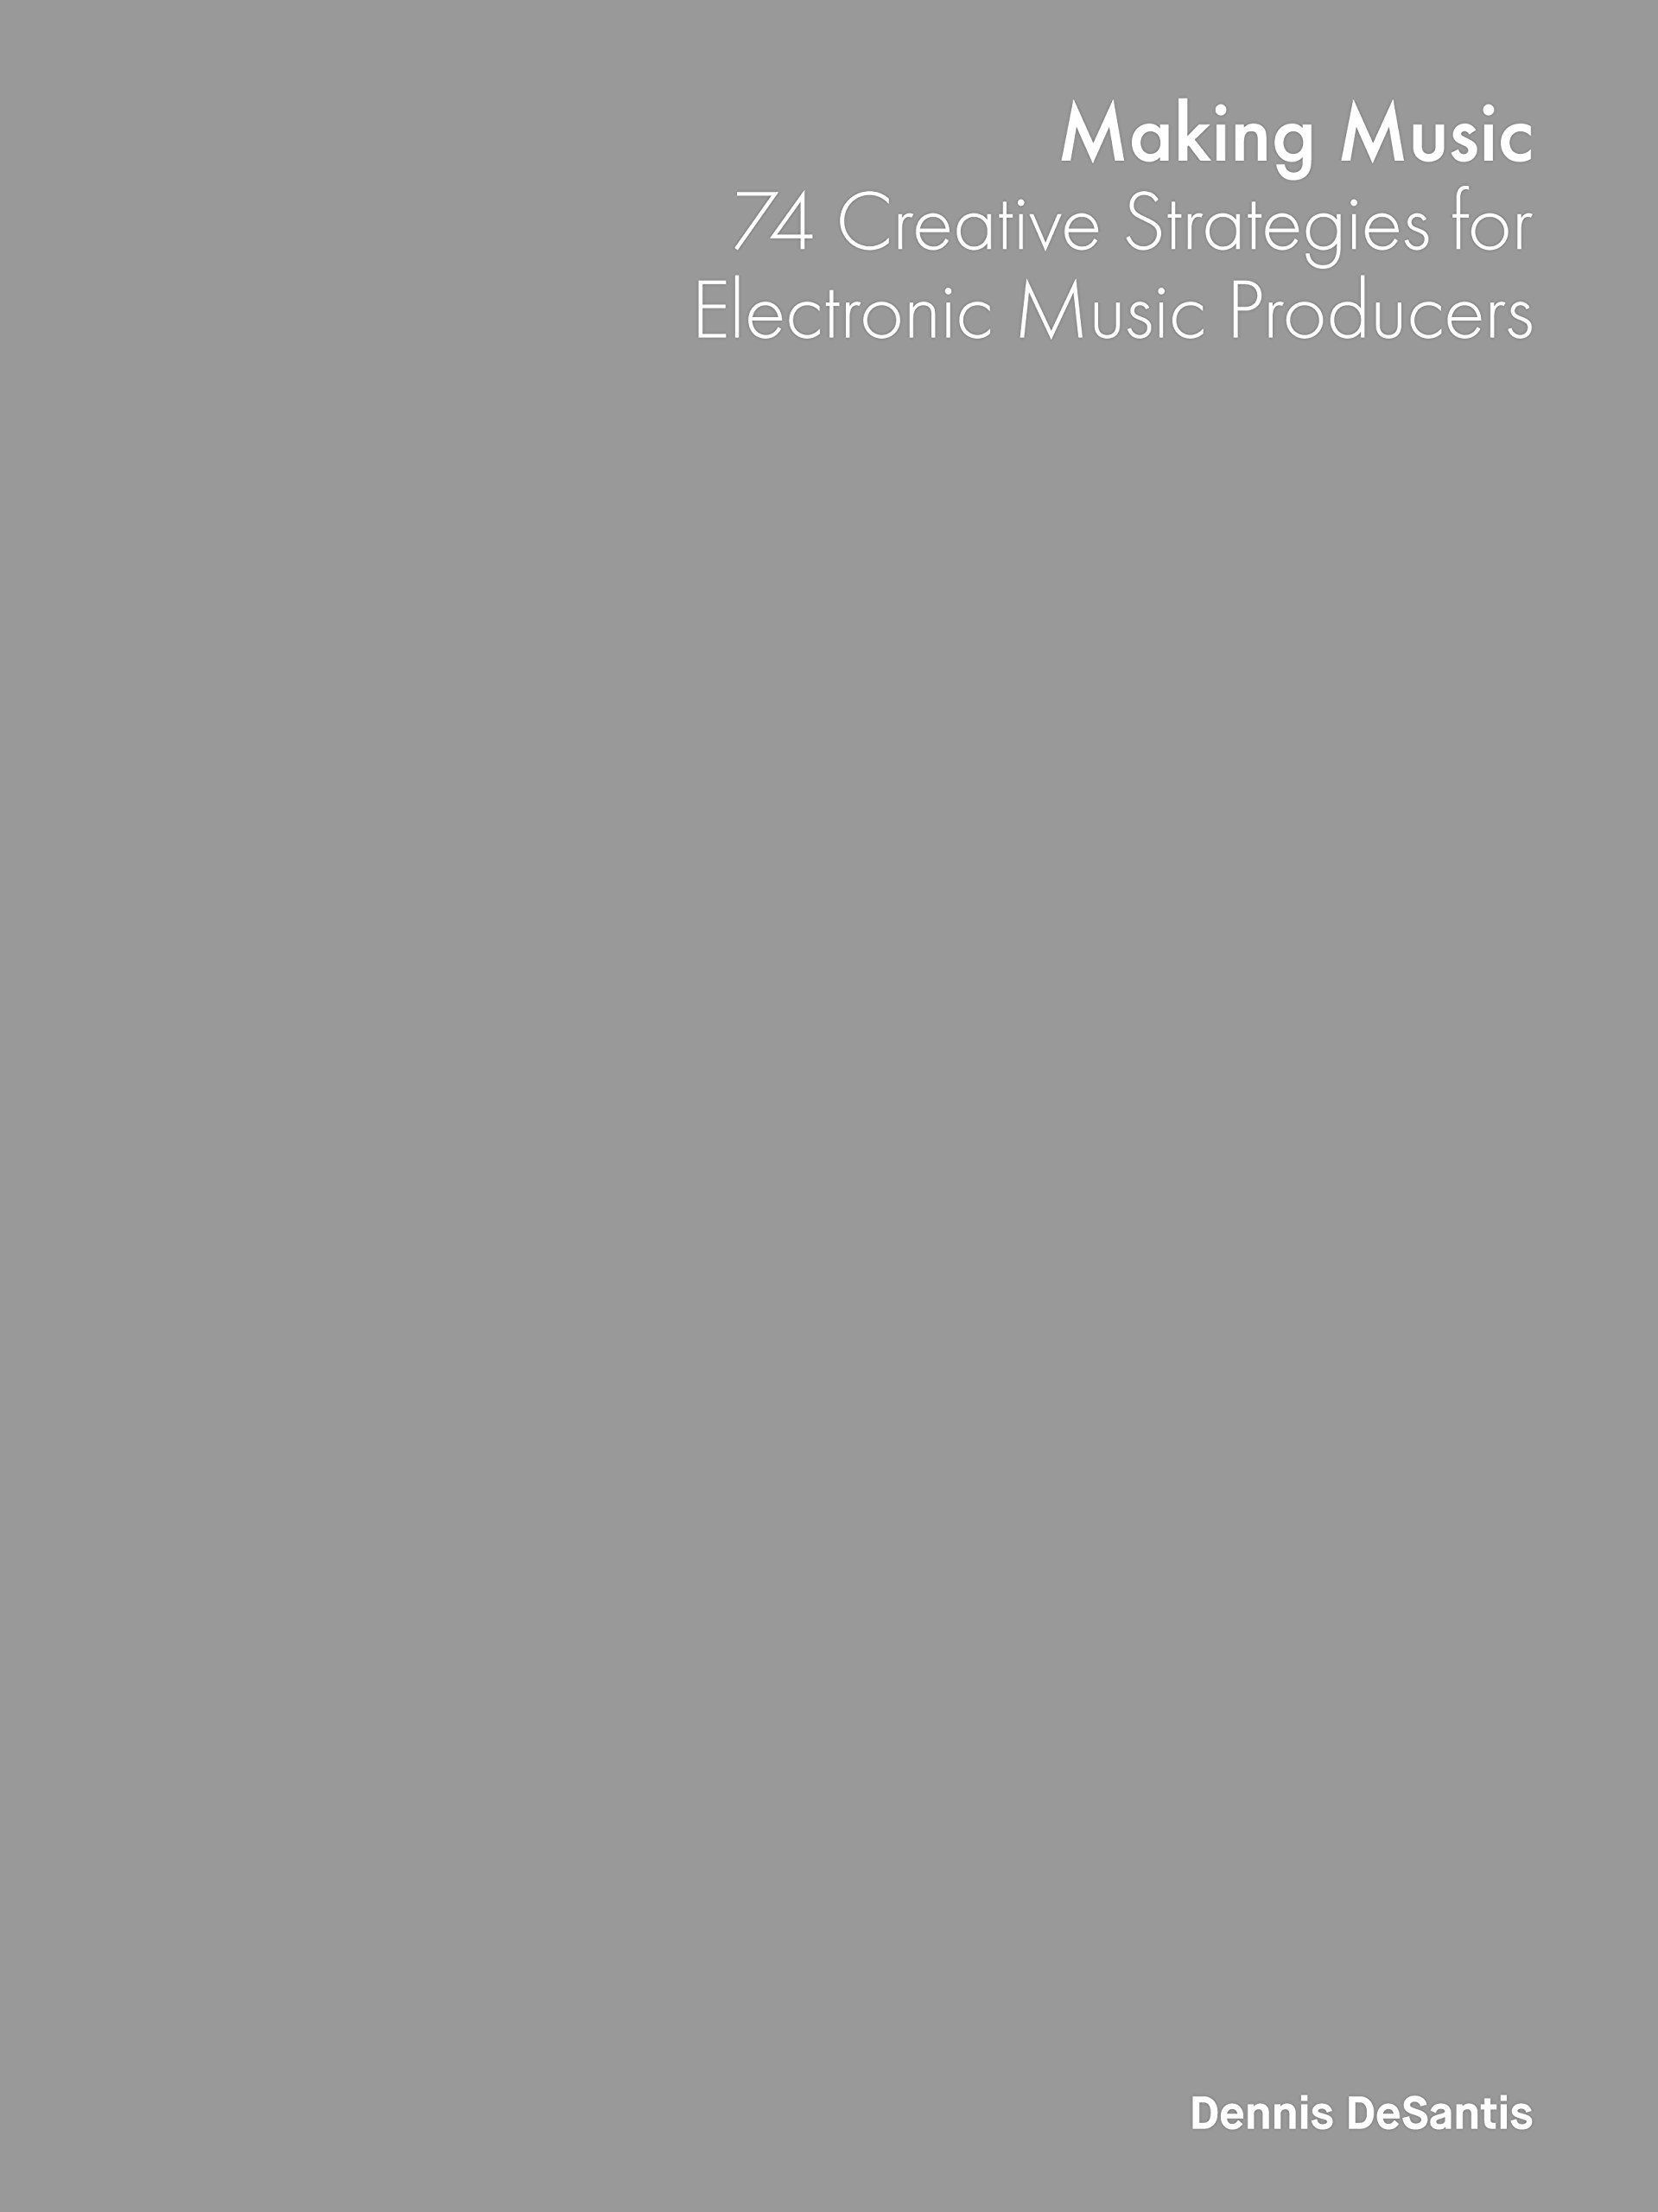 Making Music  74 Creative Strategies For Electronic Music Producers  English Edition